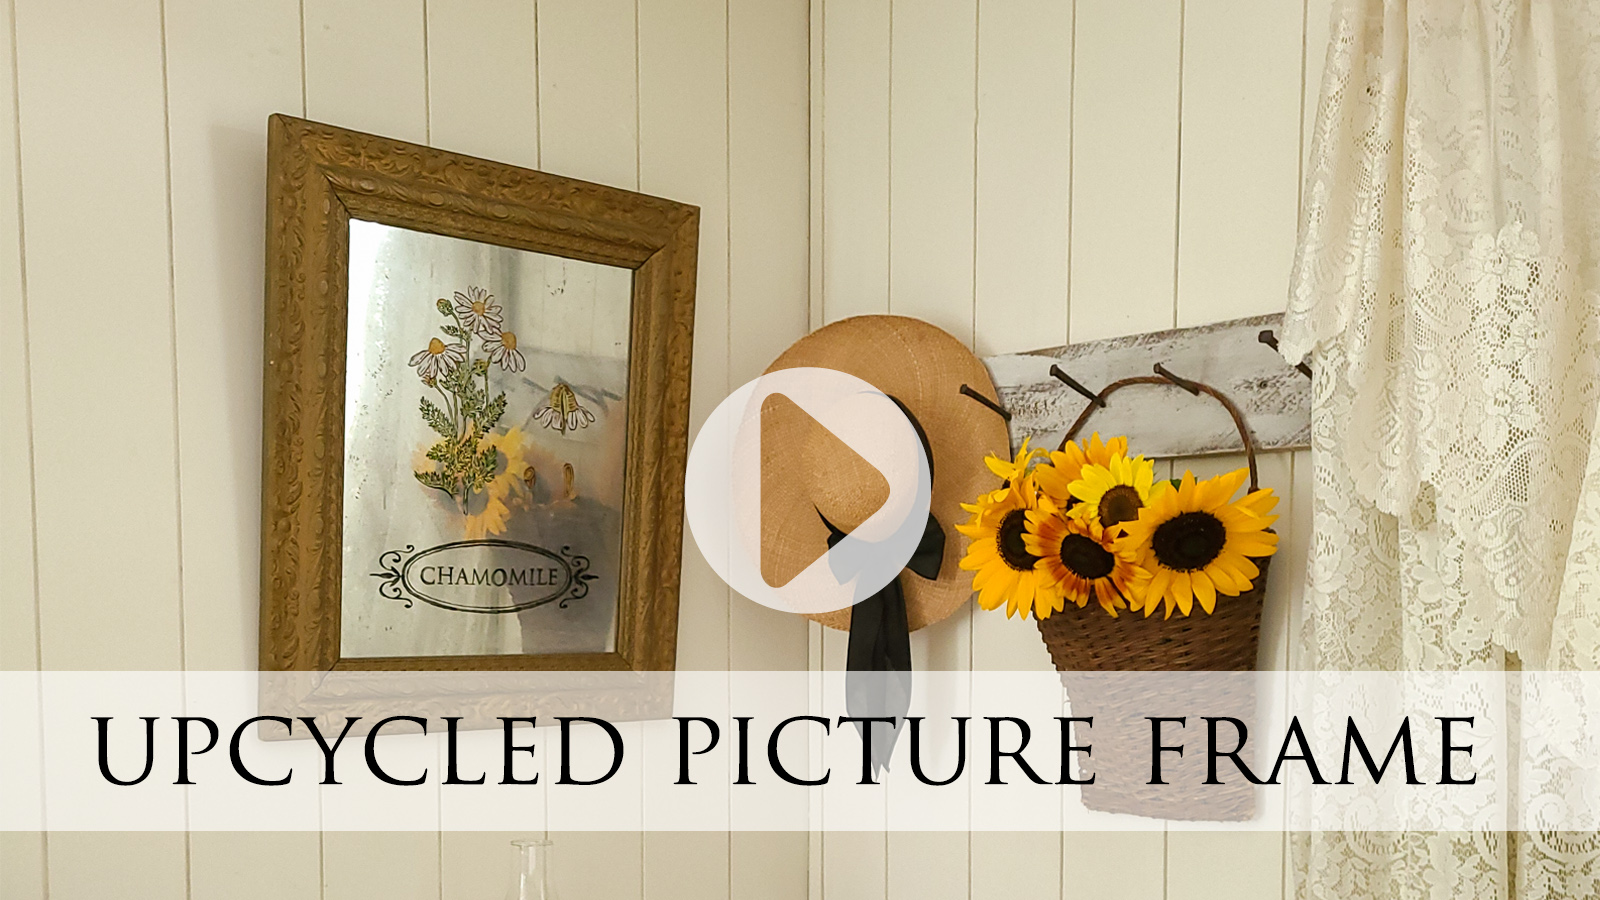 DIY Upcycled Picture Frame Video Tutorial by Larissa of Prodigal Pieces | prodigalpieces.com #prodigalpieces